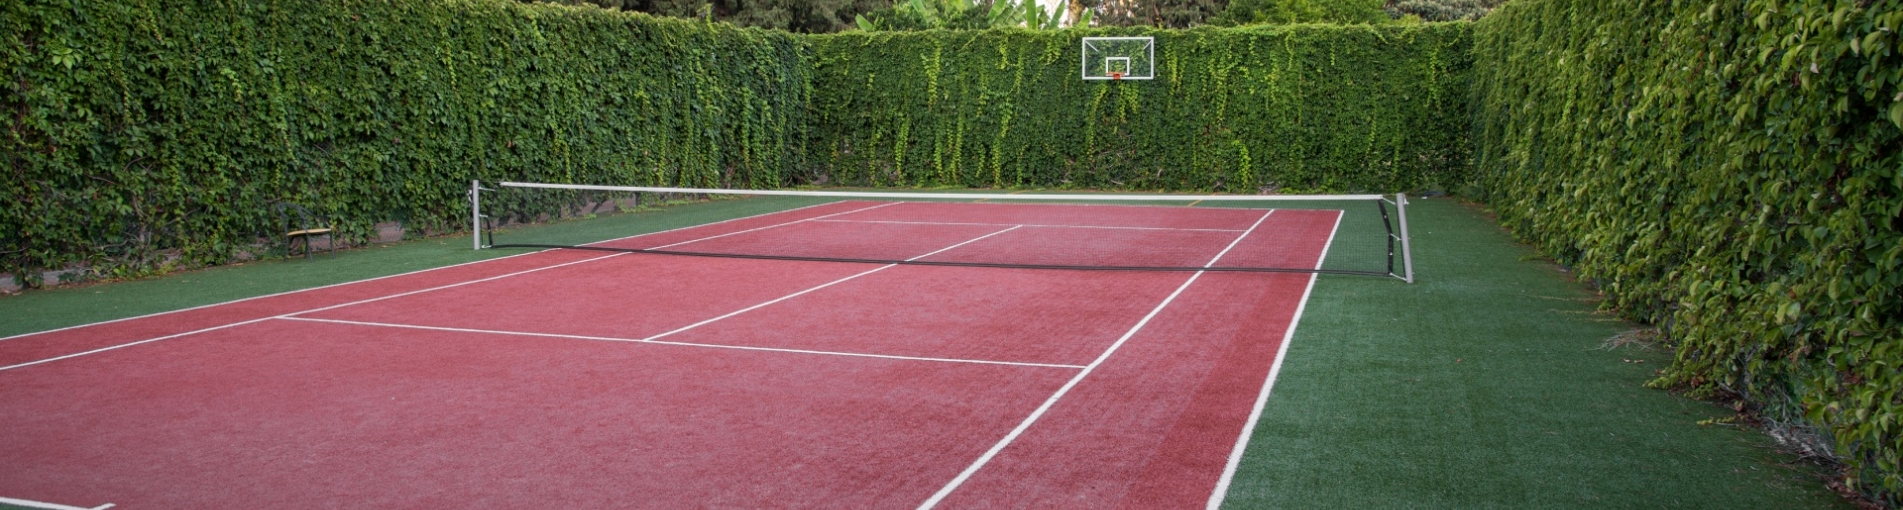 For Tennis Court Construction Cost